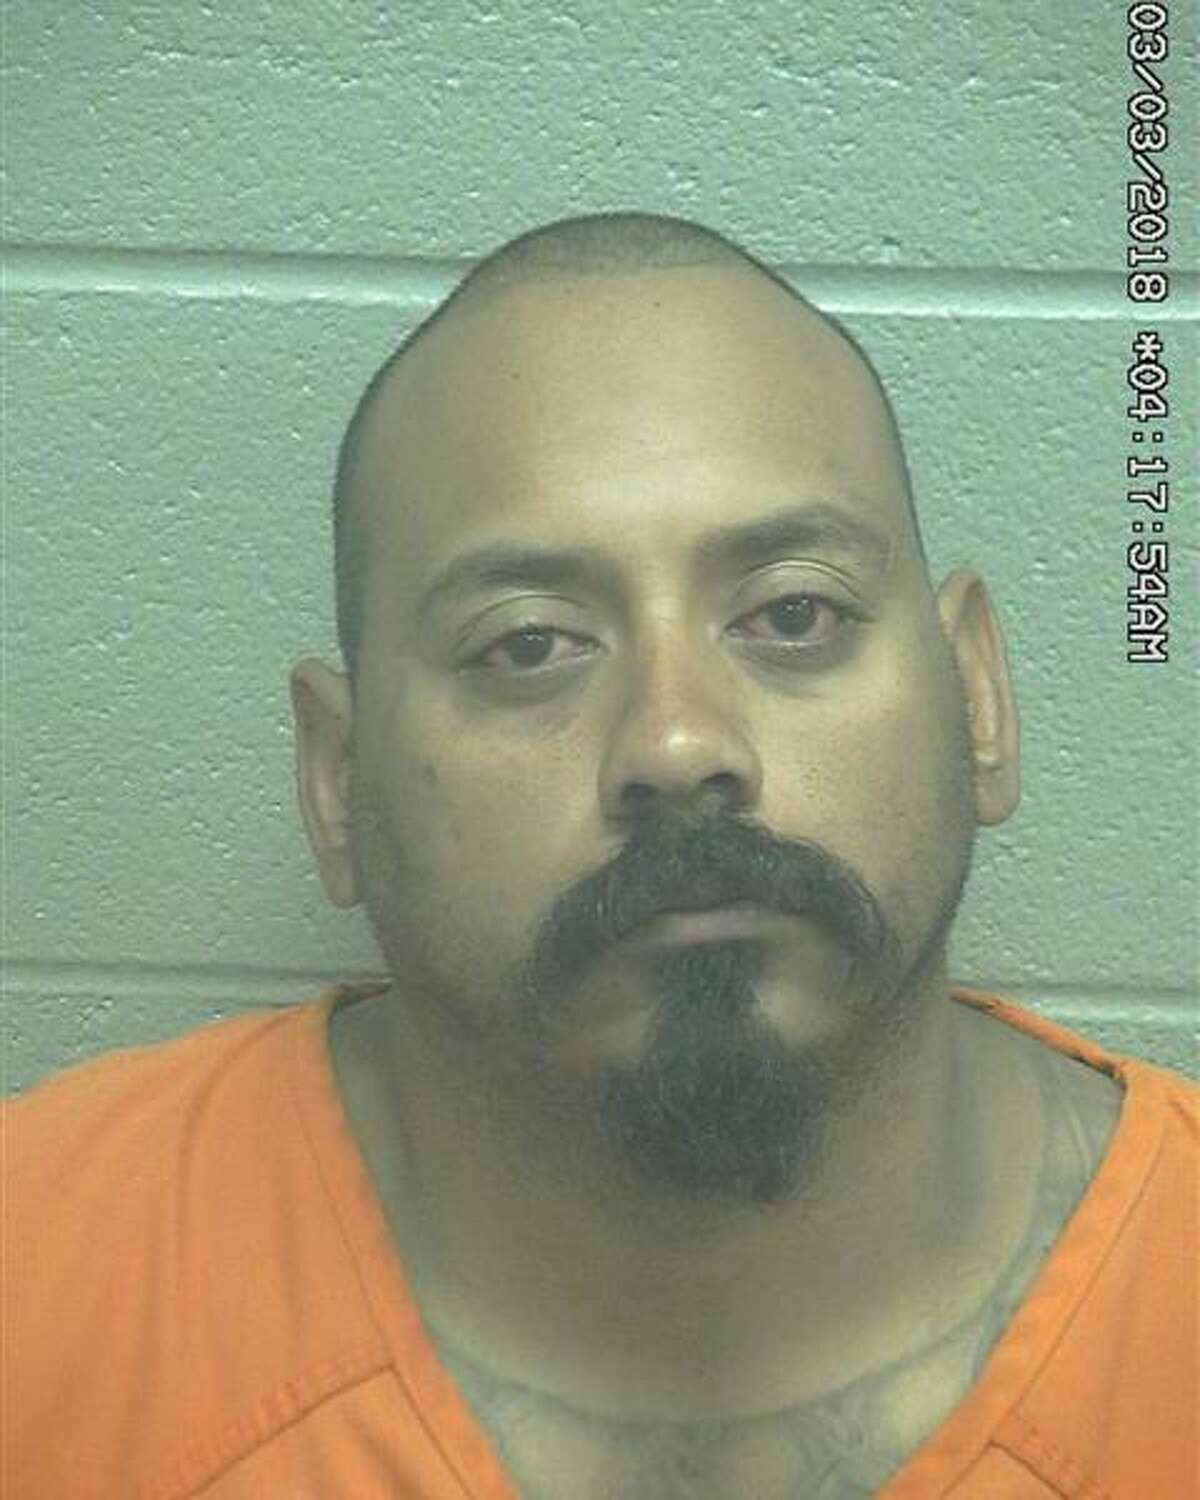 Raul Gonzalez, 32, was arrested March on a third-degree felony charge of assault of a family/house member by impeding breath/circulation and a Class A misdemeanor charge of interfering with an emergency call. READ MORE:Two men arrested on assault charges